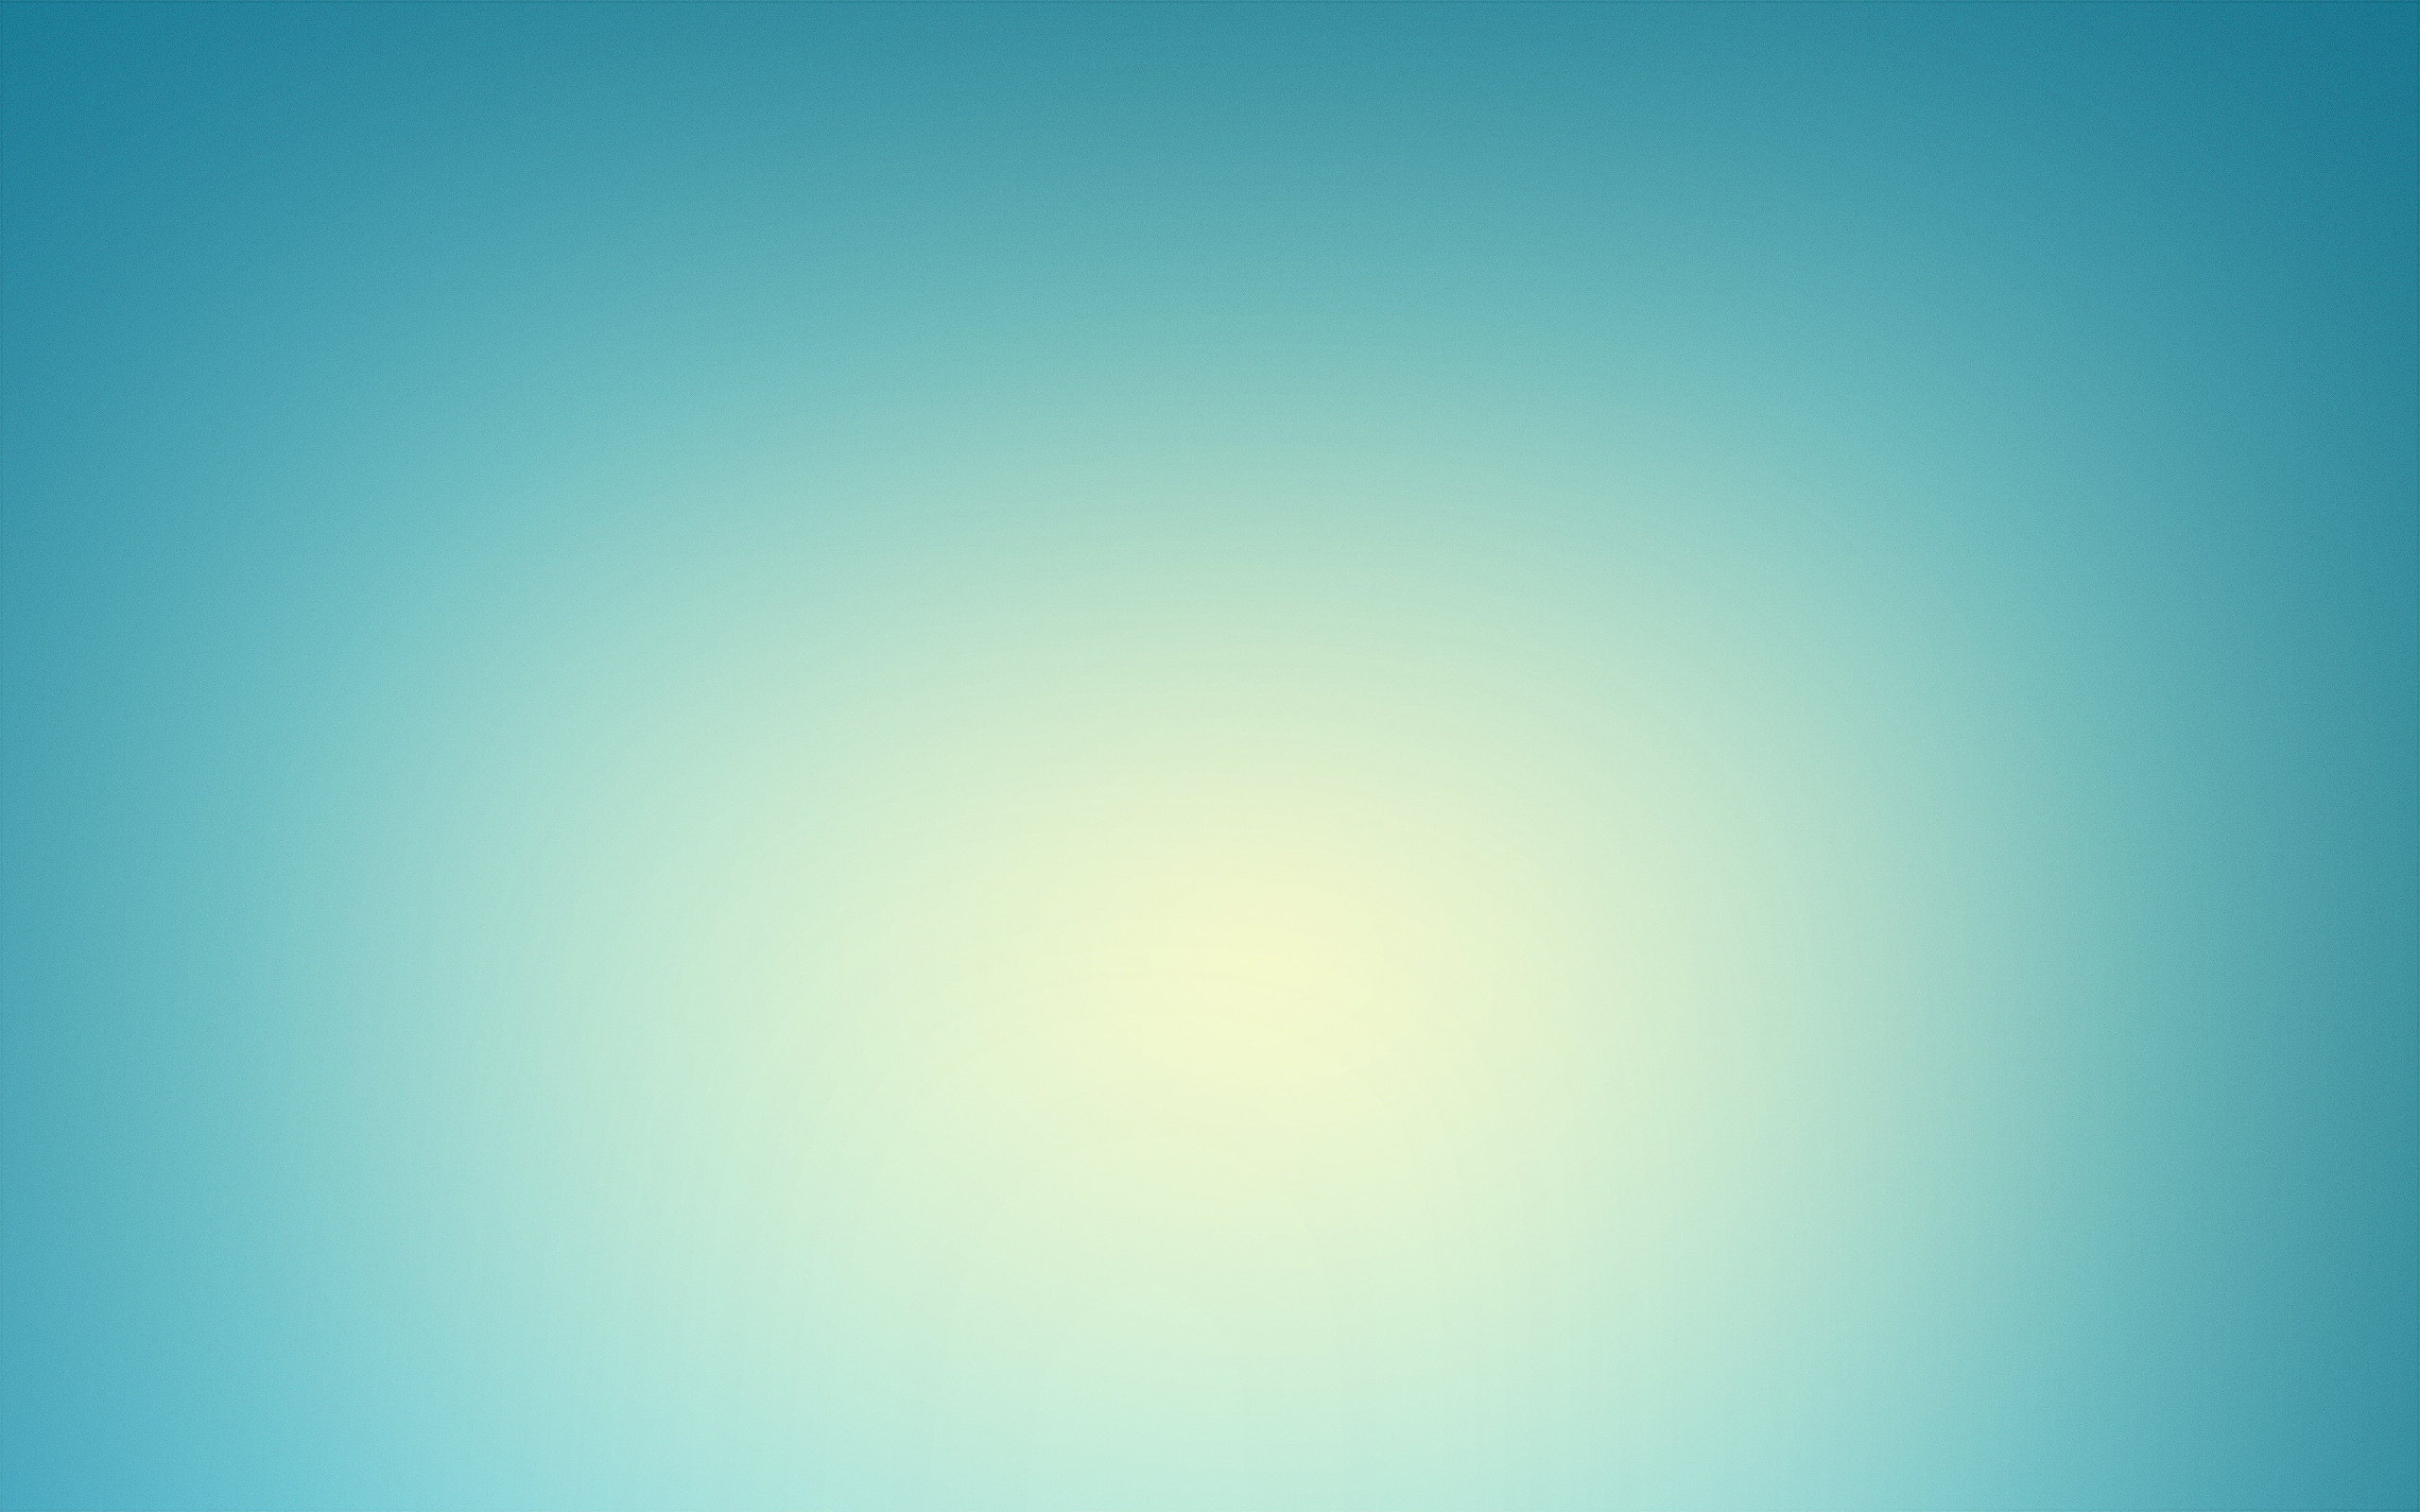 Light Blue Best Abstract Wallpaper Hd Wallpaper